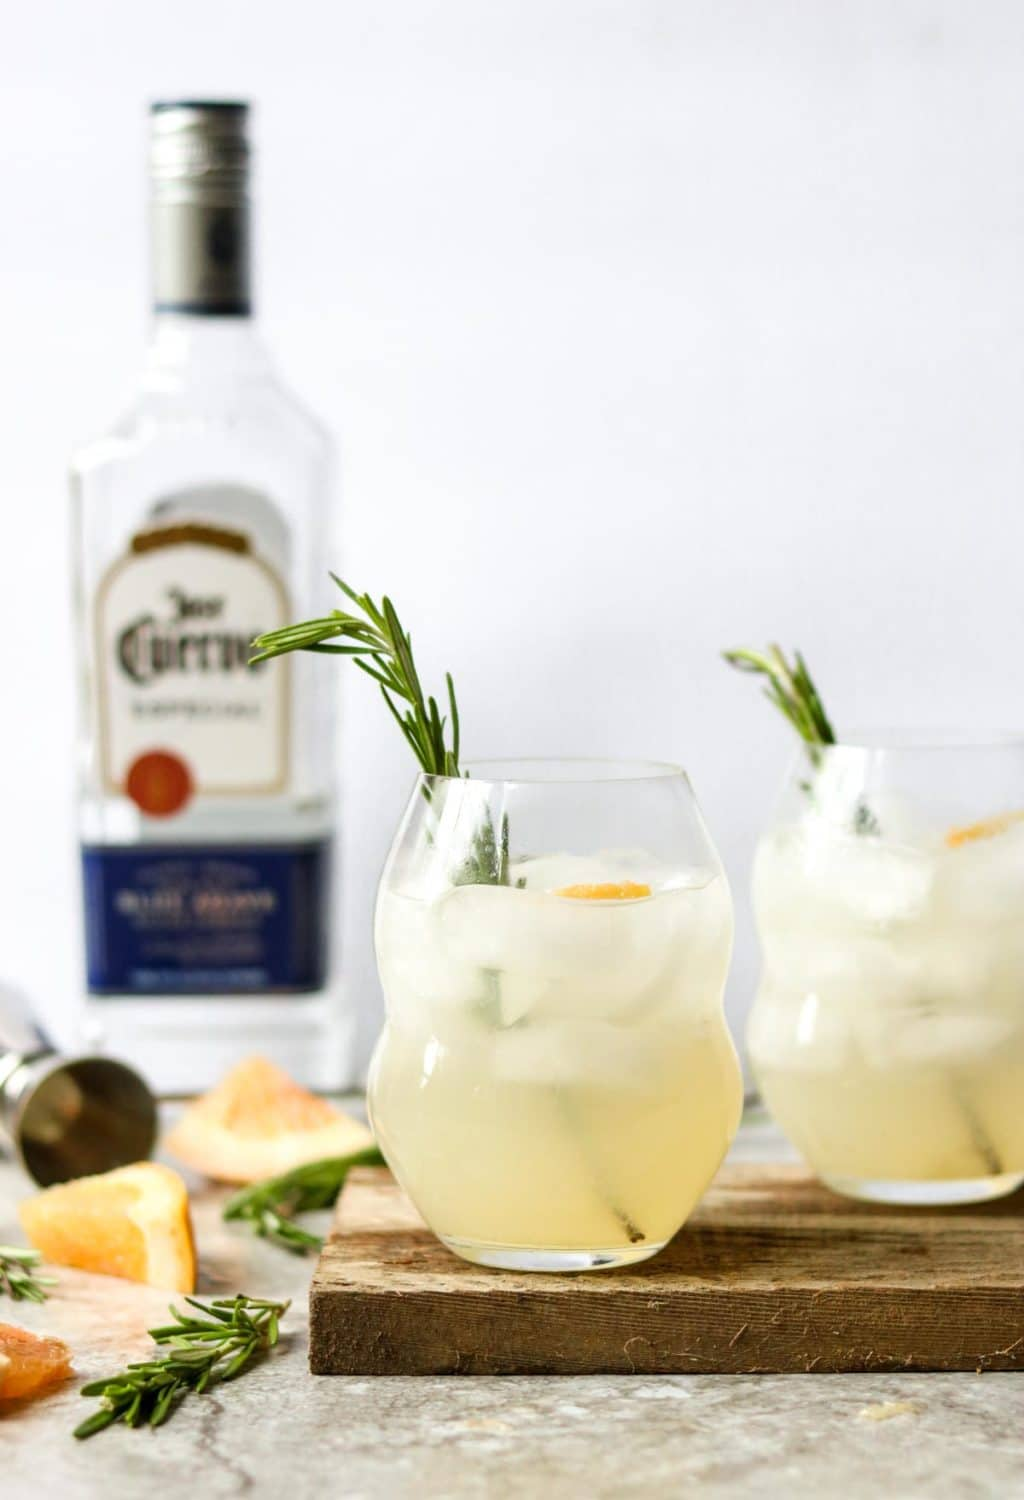 two glasses of Rosemary Paloma with rosemary sprig garnish, a bottle of tequila in the background